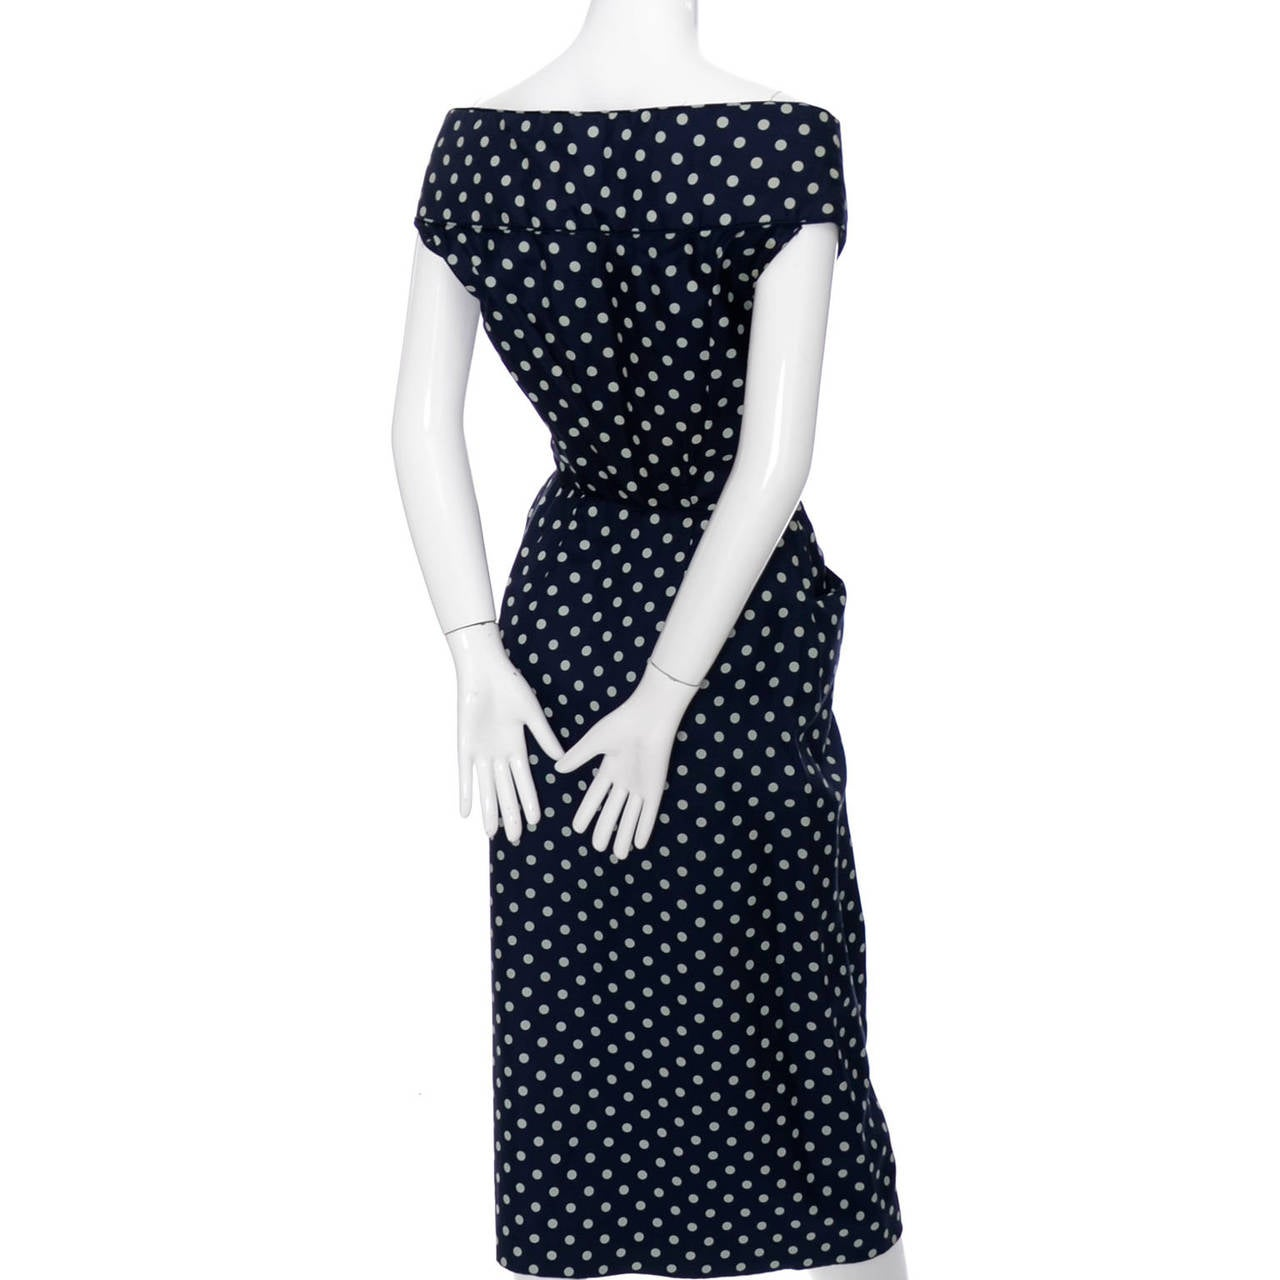 1950s Ceil Chapman Silk Vintage Dress Navy Blue Polka Dots